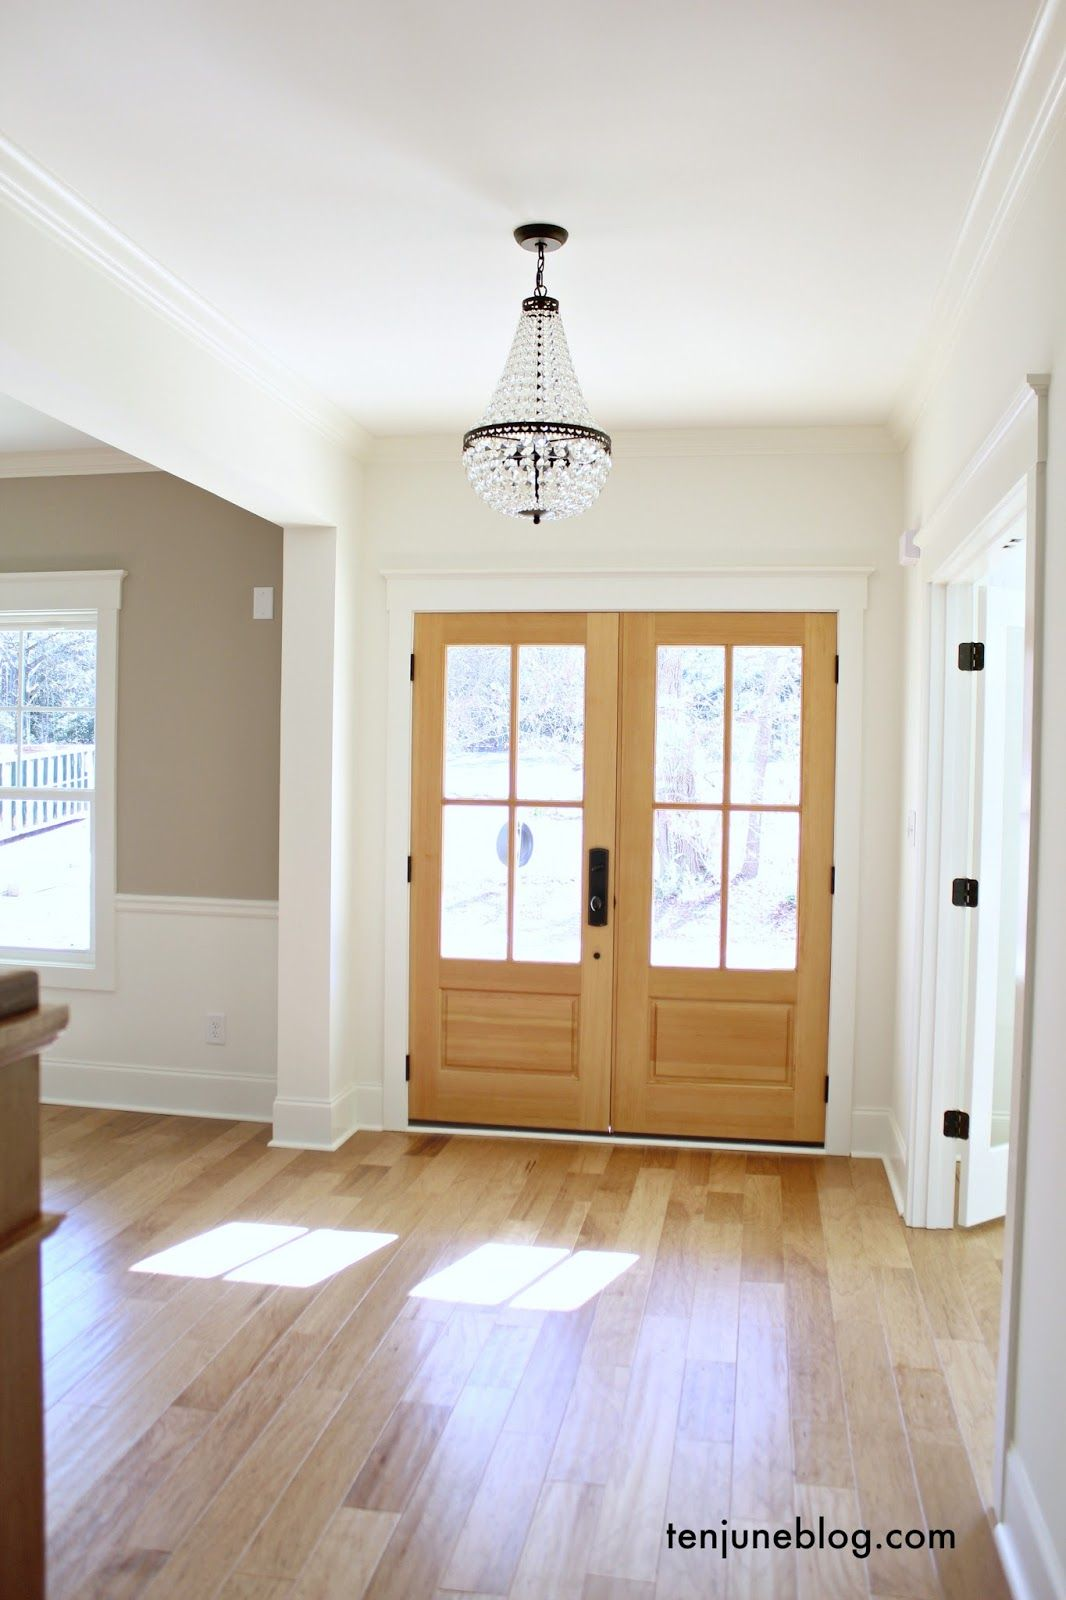 Ten June Building Our House Flooring and Counter Sources Mohawk hickory hand scraped hardwood floors and natural wood front doors entry way & Ten June: Building Our House: Flooring and Counter Sources Mohawk ...